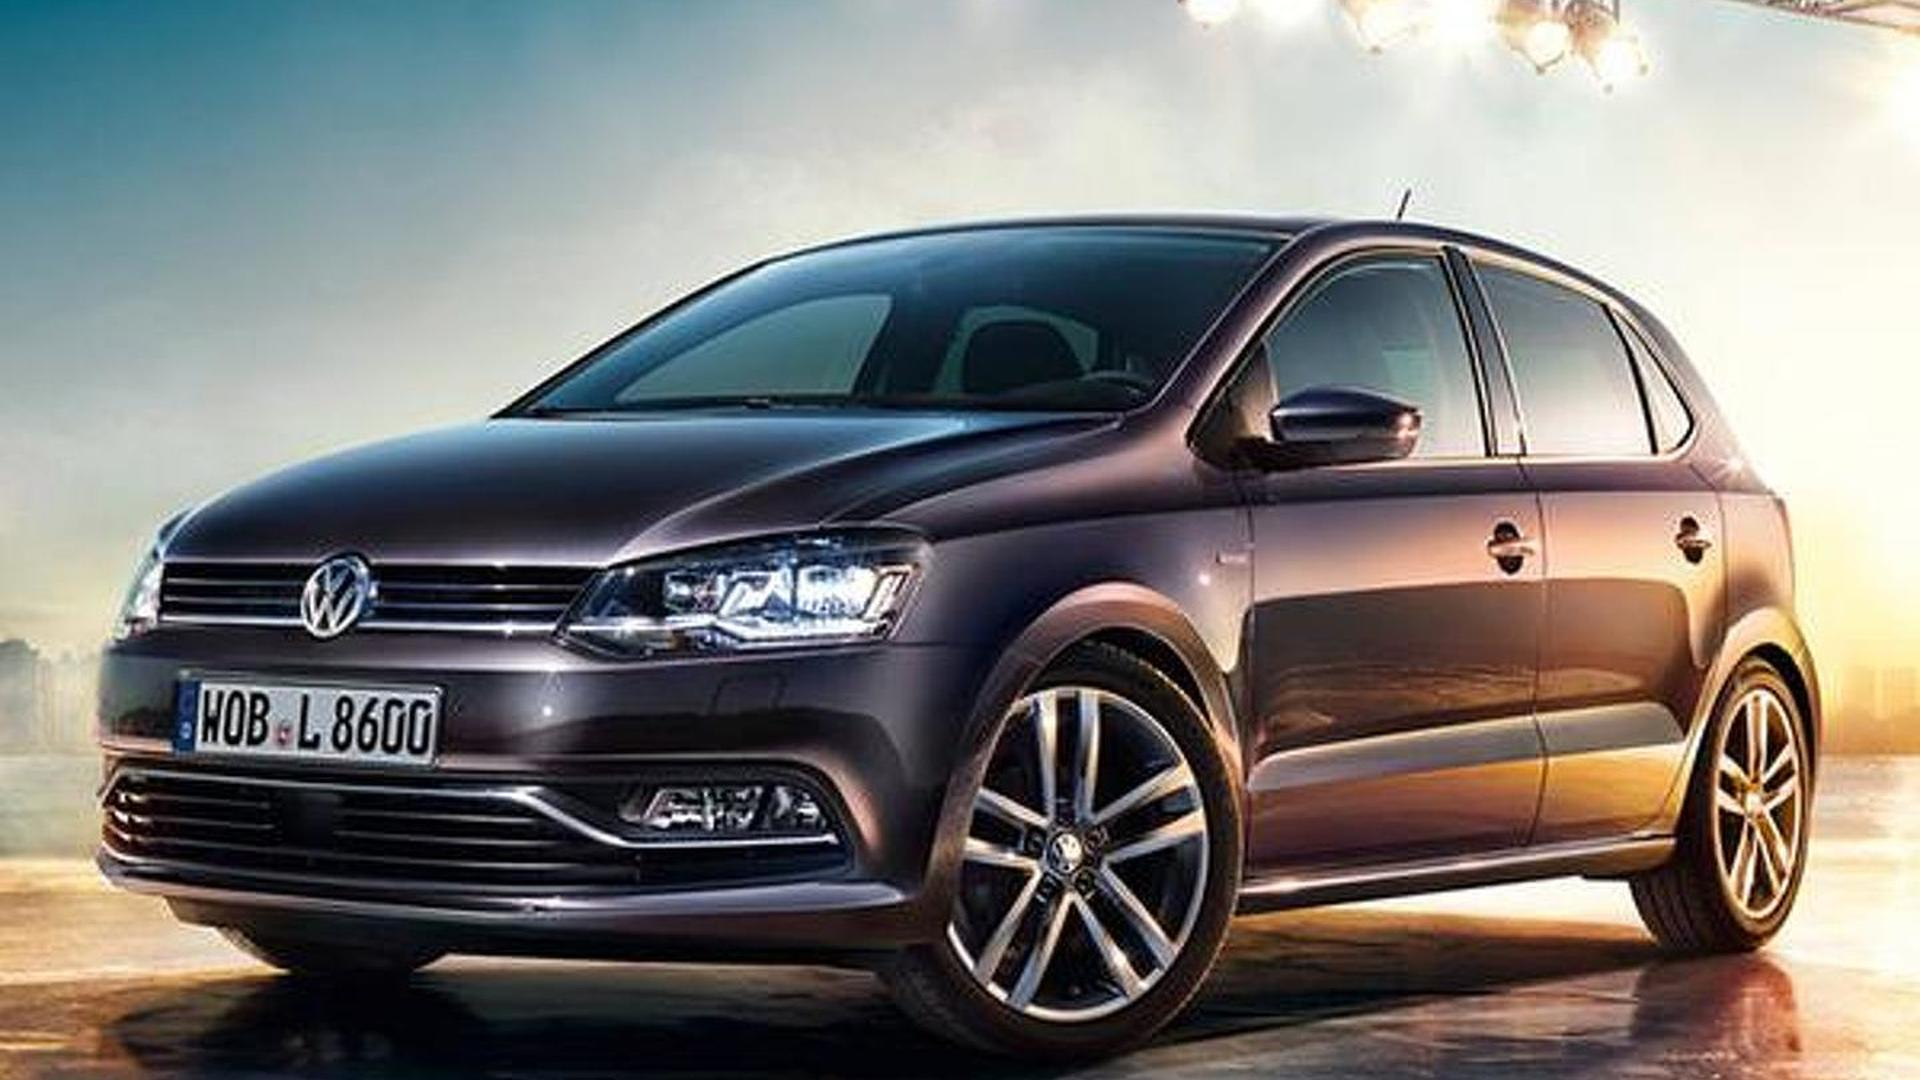 Volkswagen Polo Lounge limited edition introduced in Germany